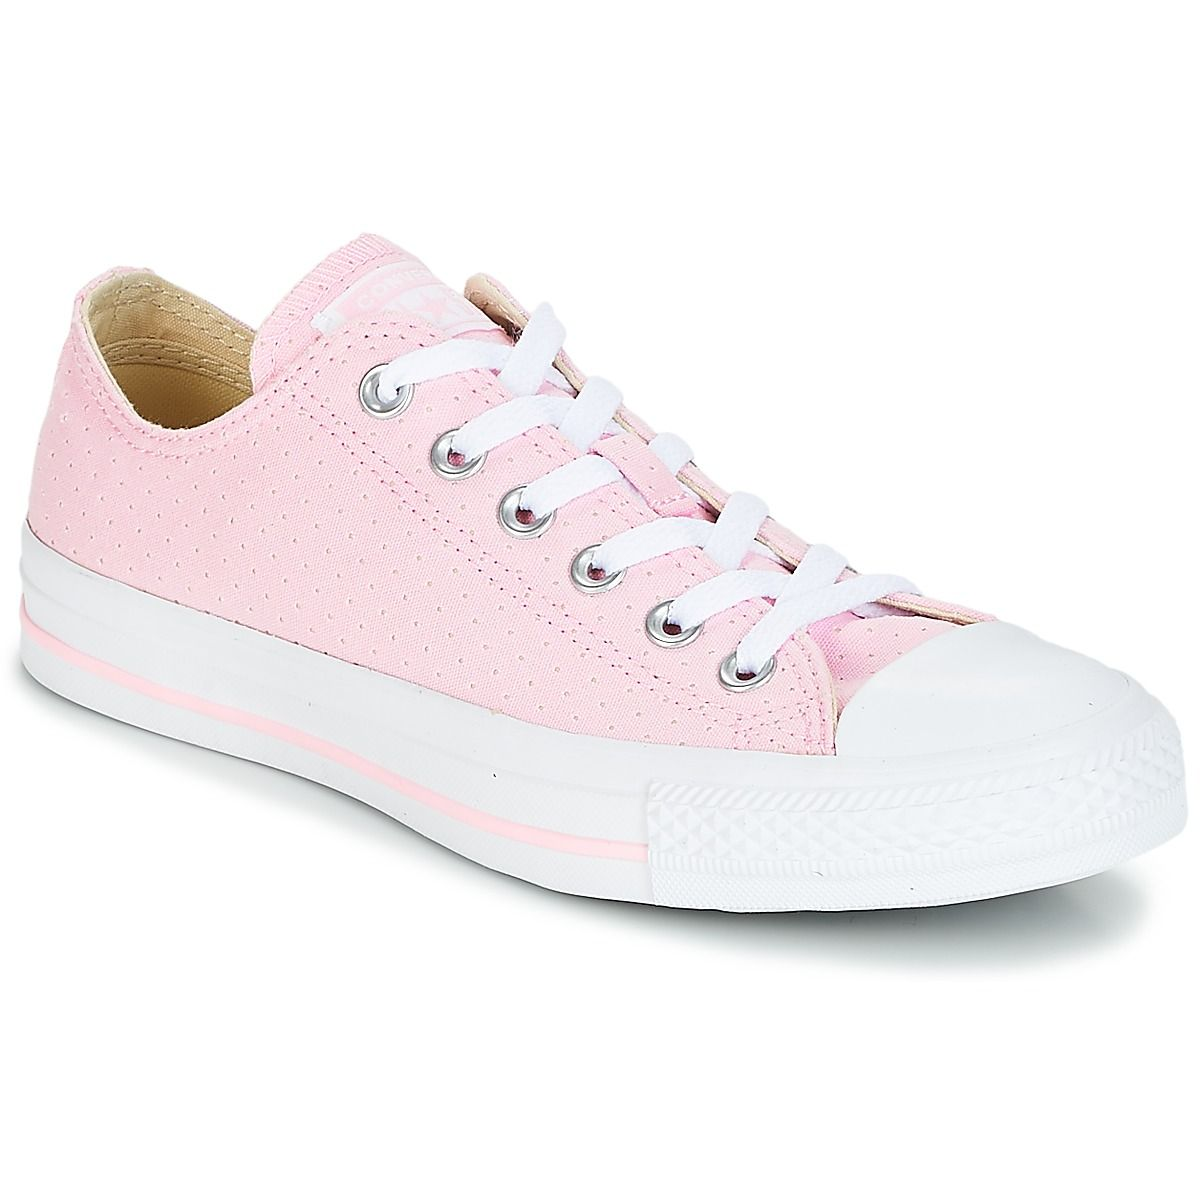 2converse all star donna offerta